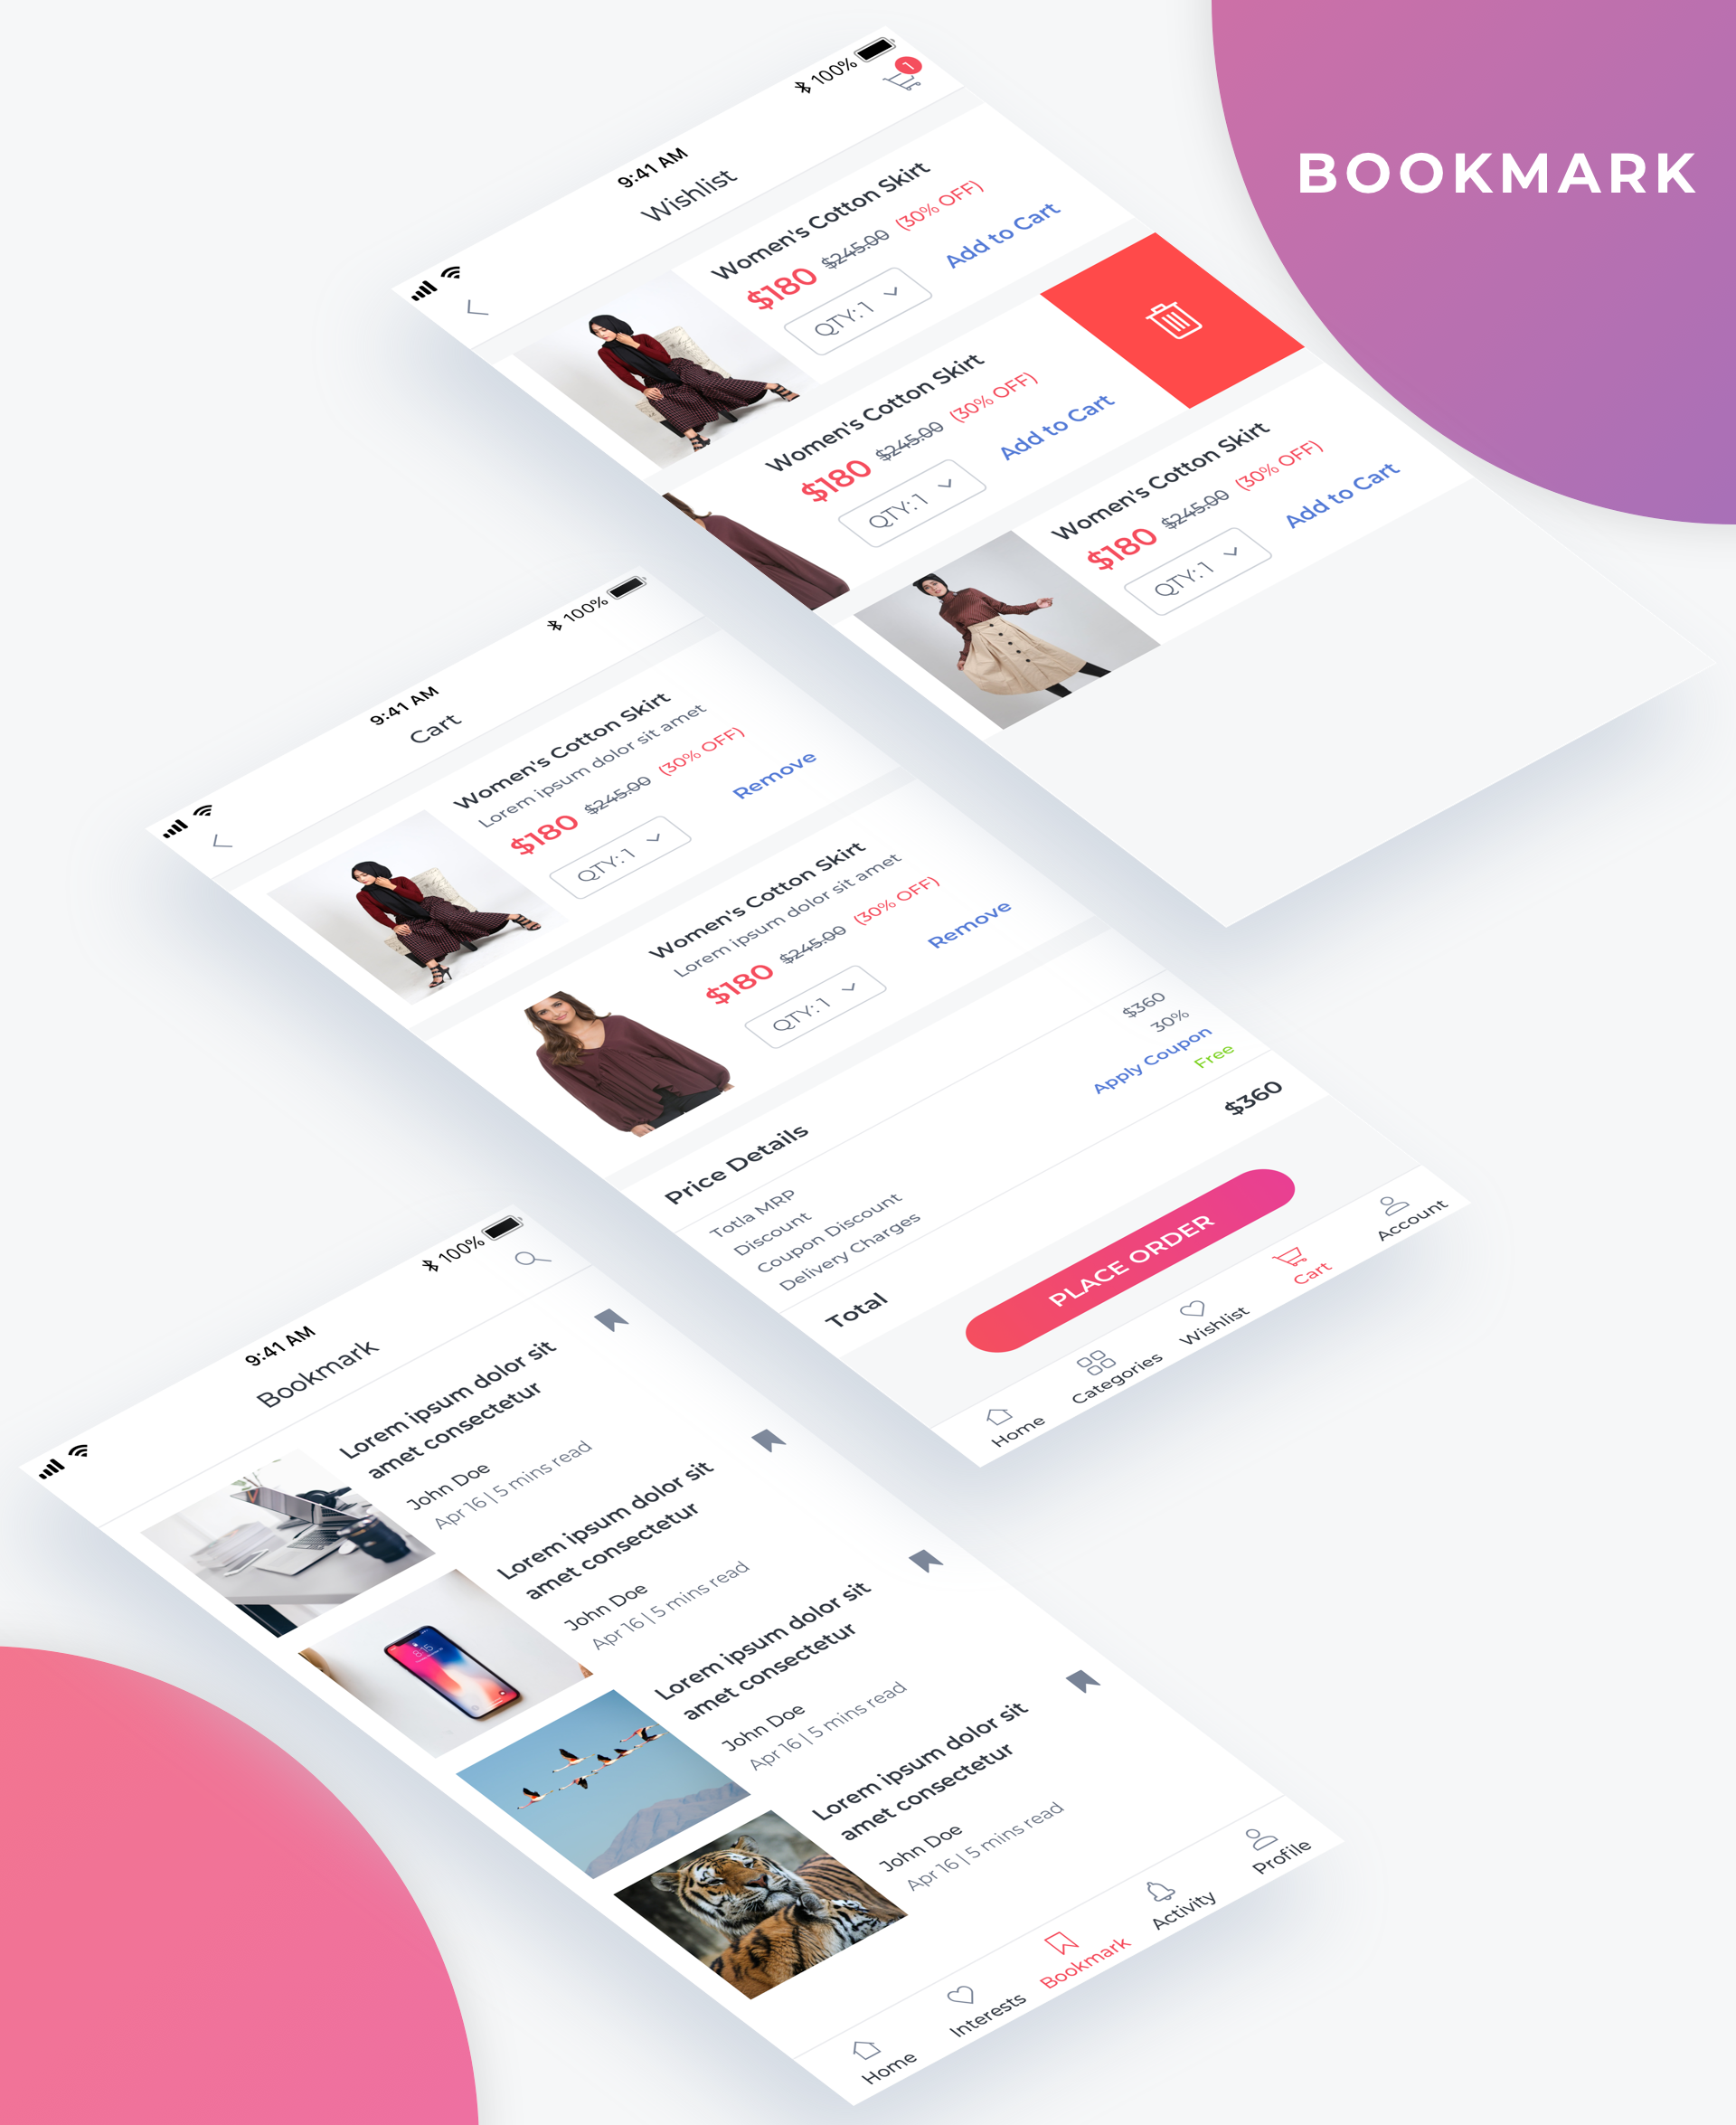 Essential UI Kit - Bookmark Page